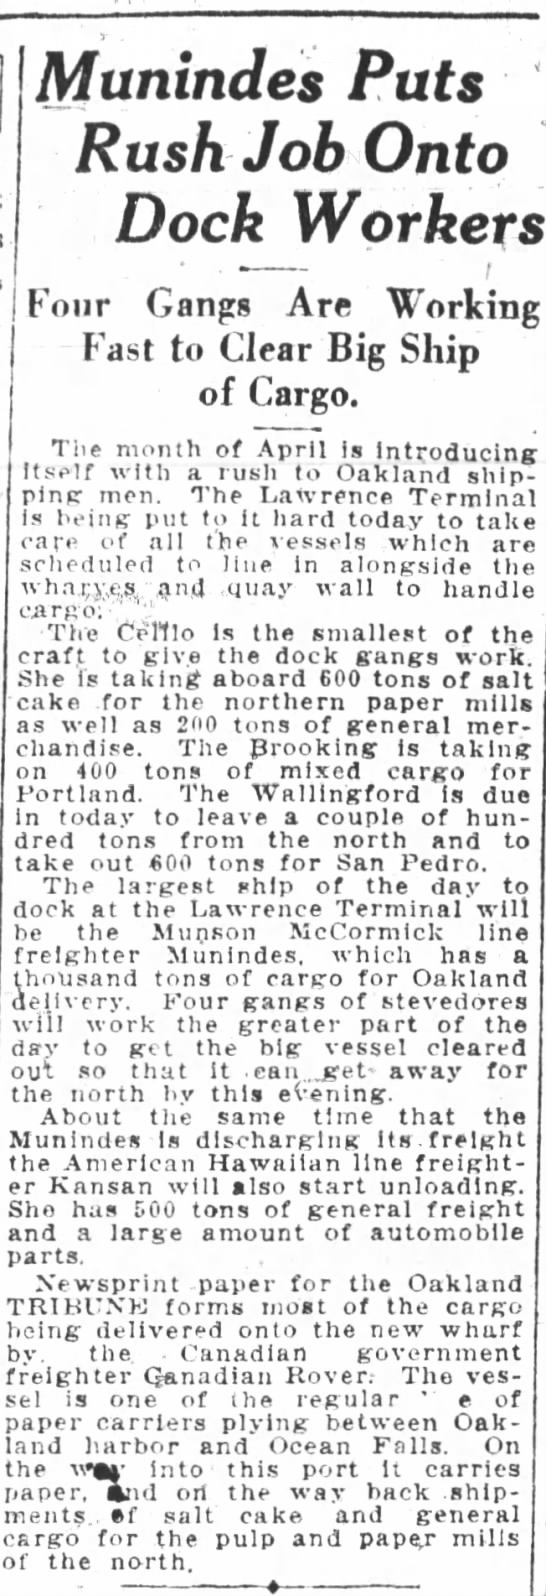 Kansan auto parts to Oakland Apr 1926 - Munindes Puts Rush Job Onto Dock Workers Four...